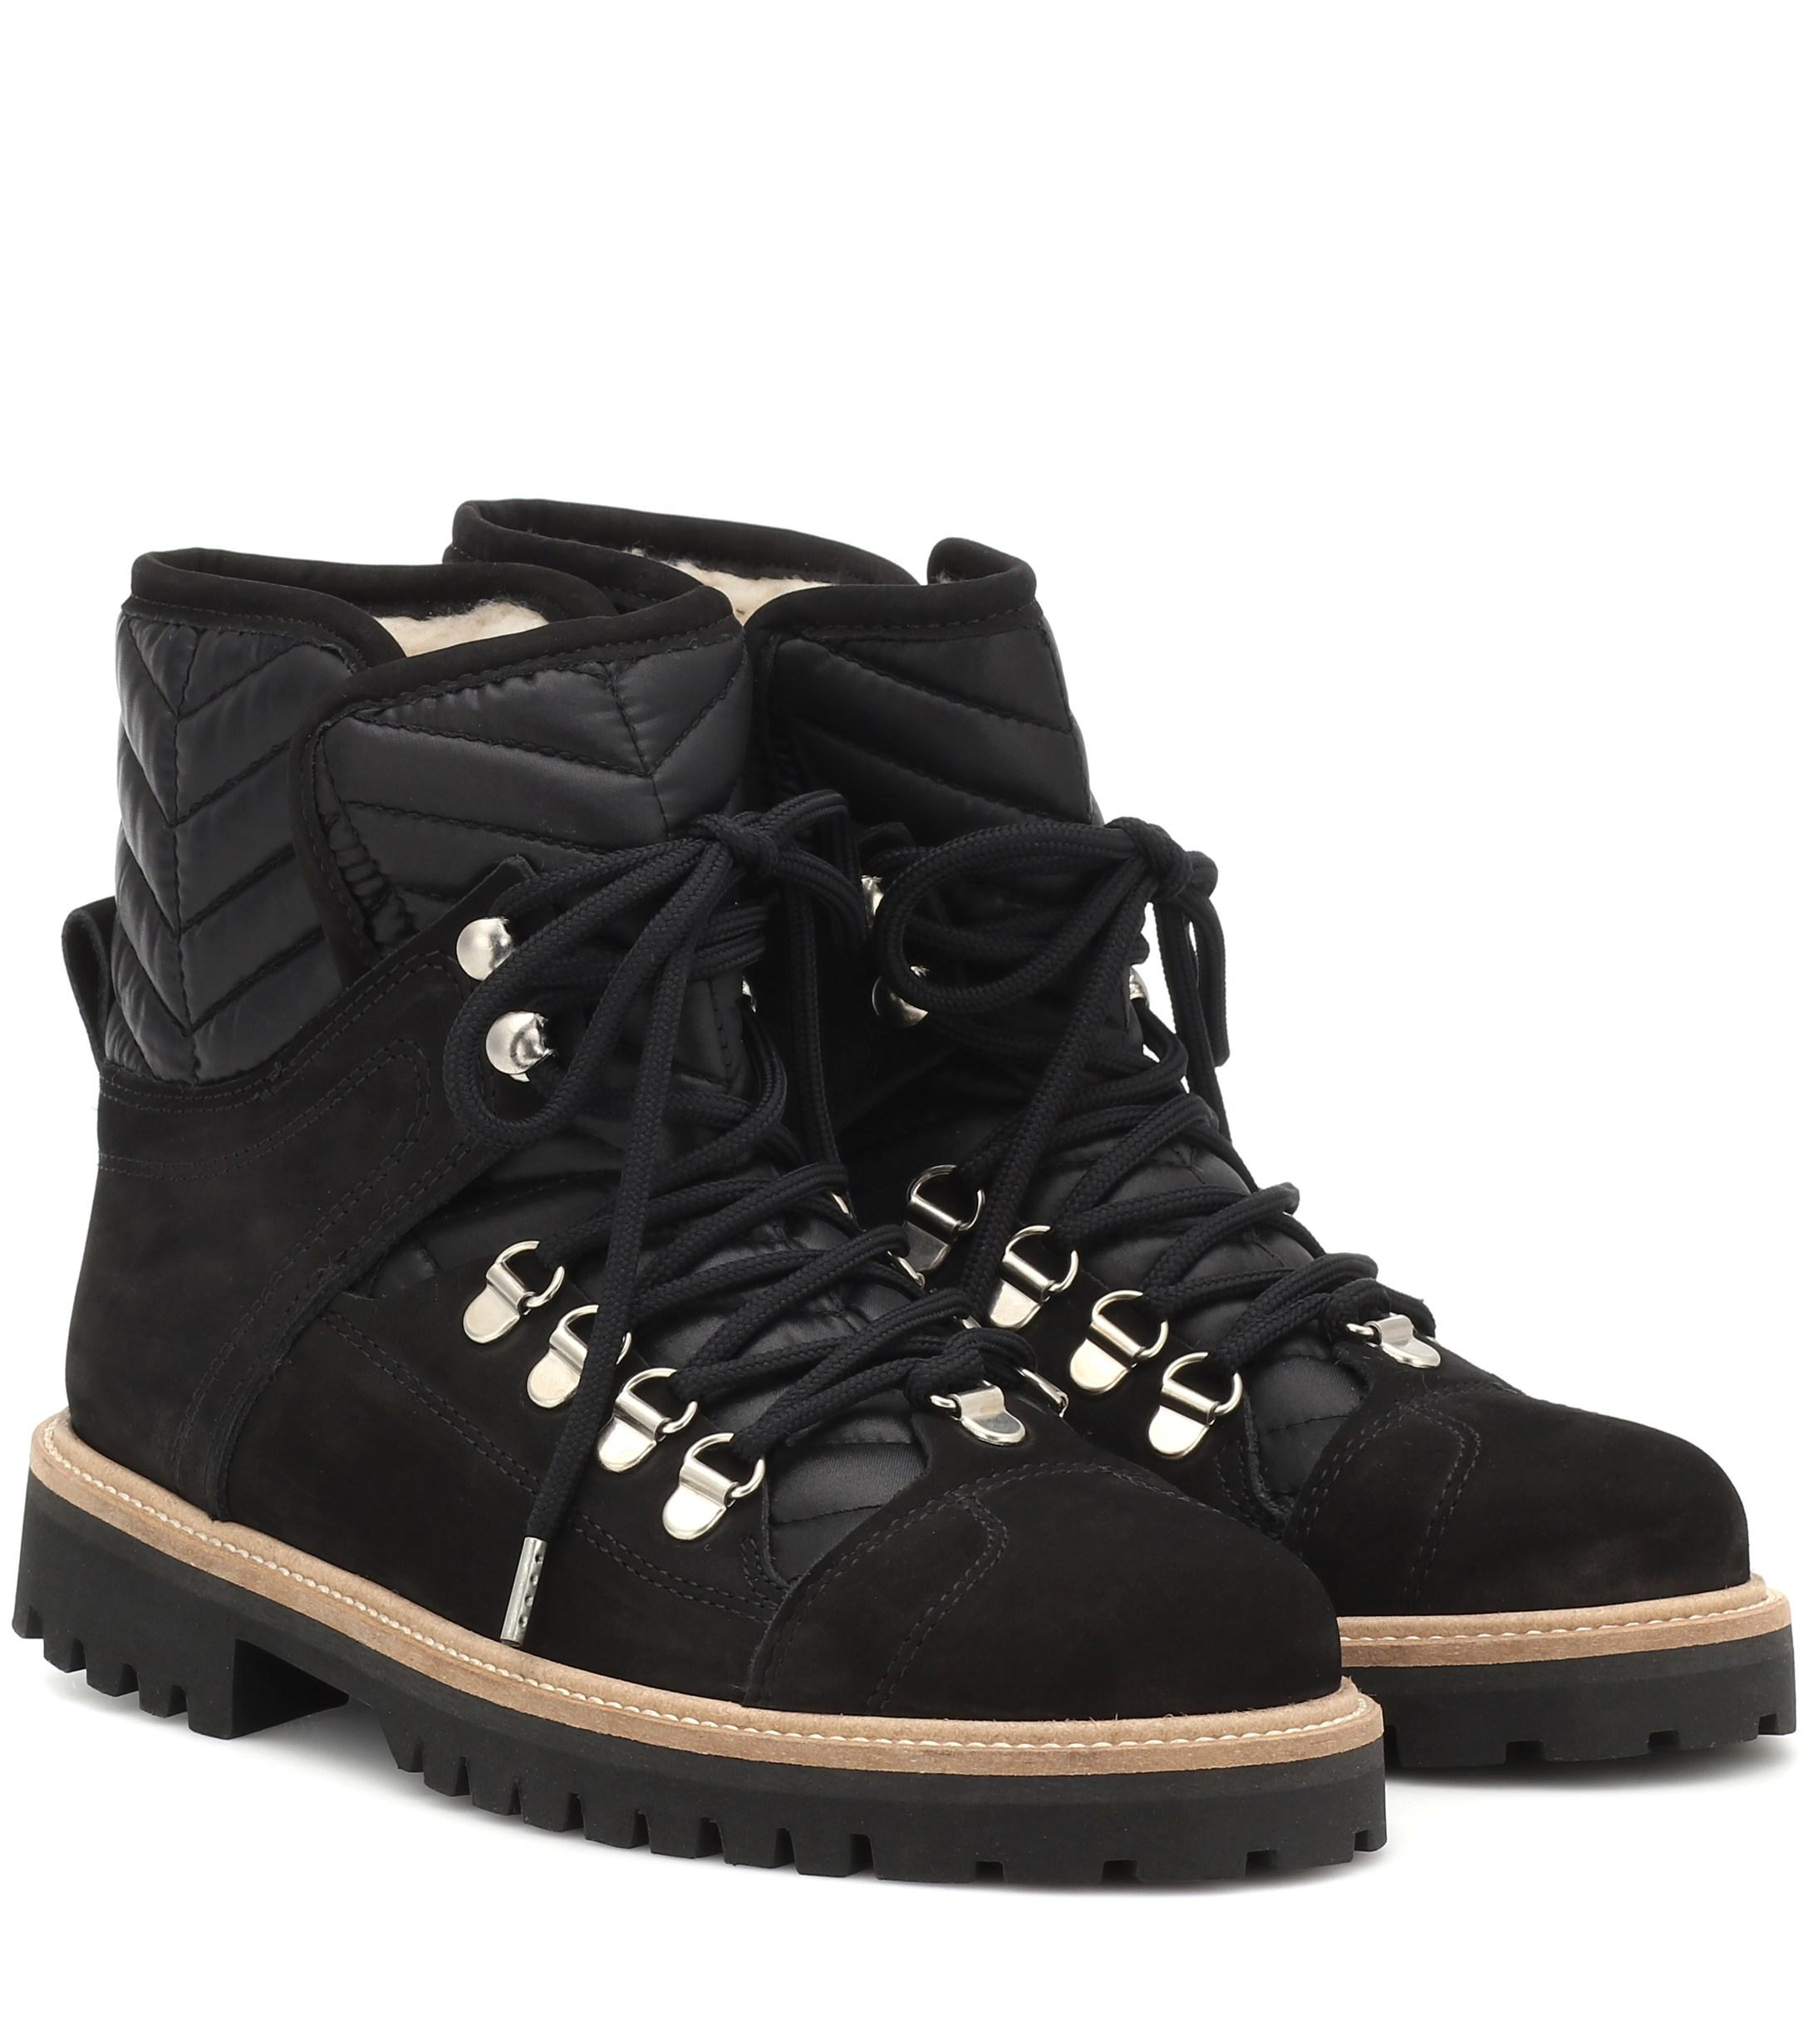 1956bf00929 Women's Black Edna Suede Ankle Boots